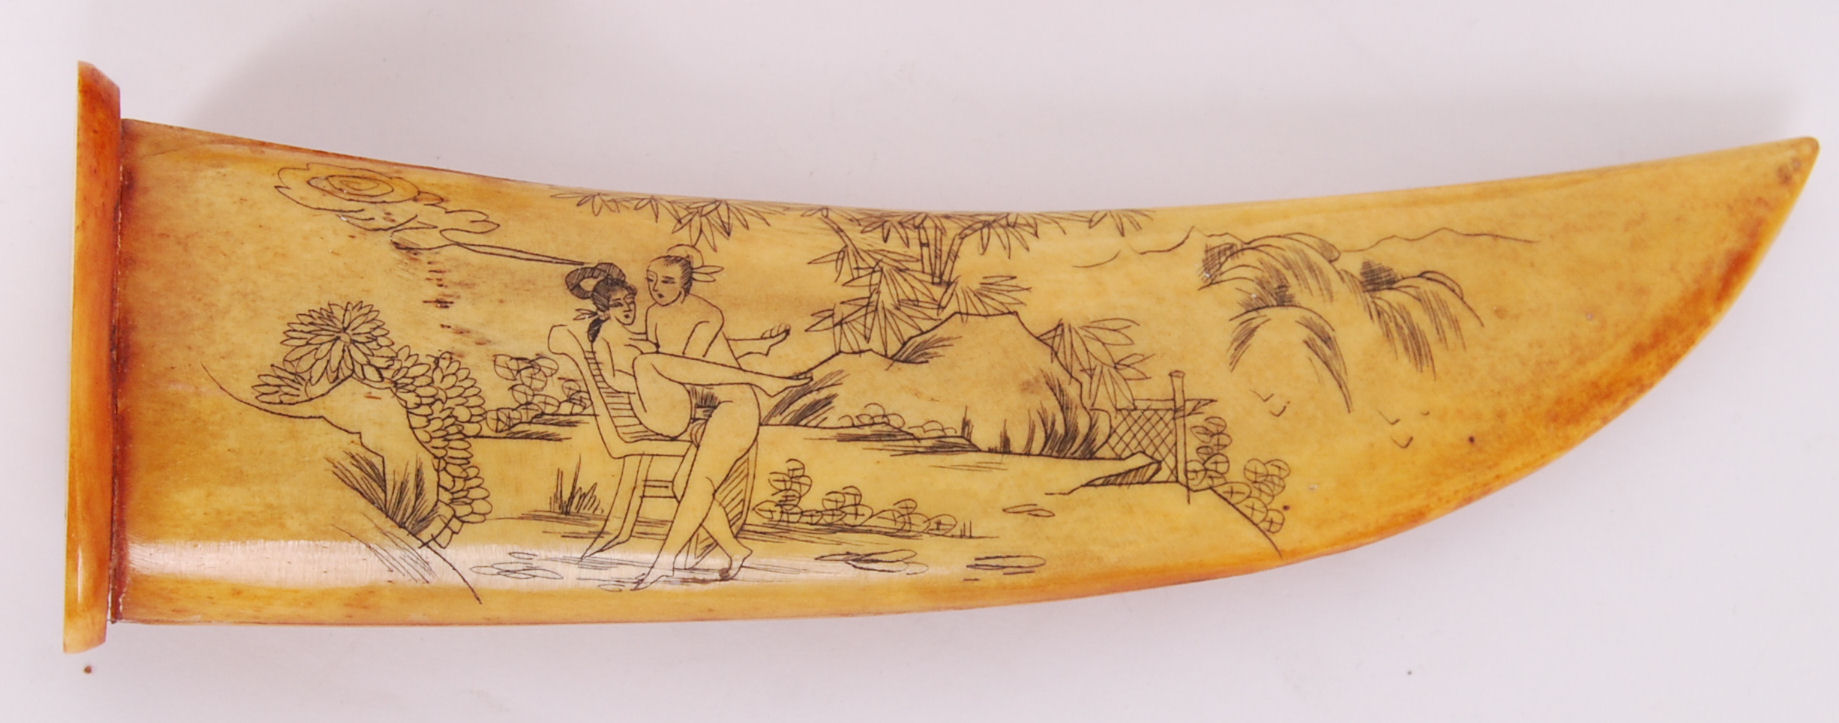 Lot 288 - BONE KNIFE